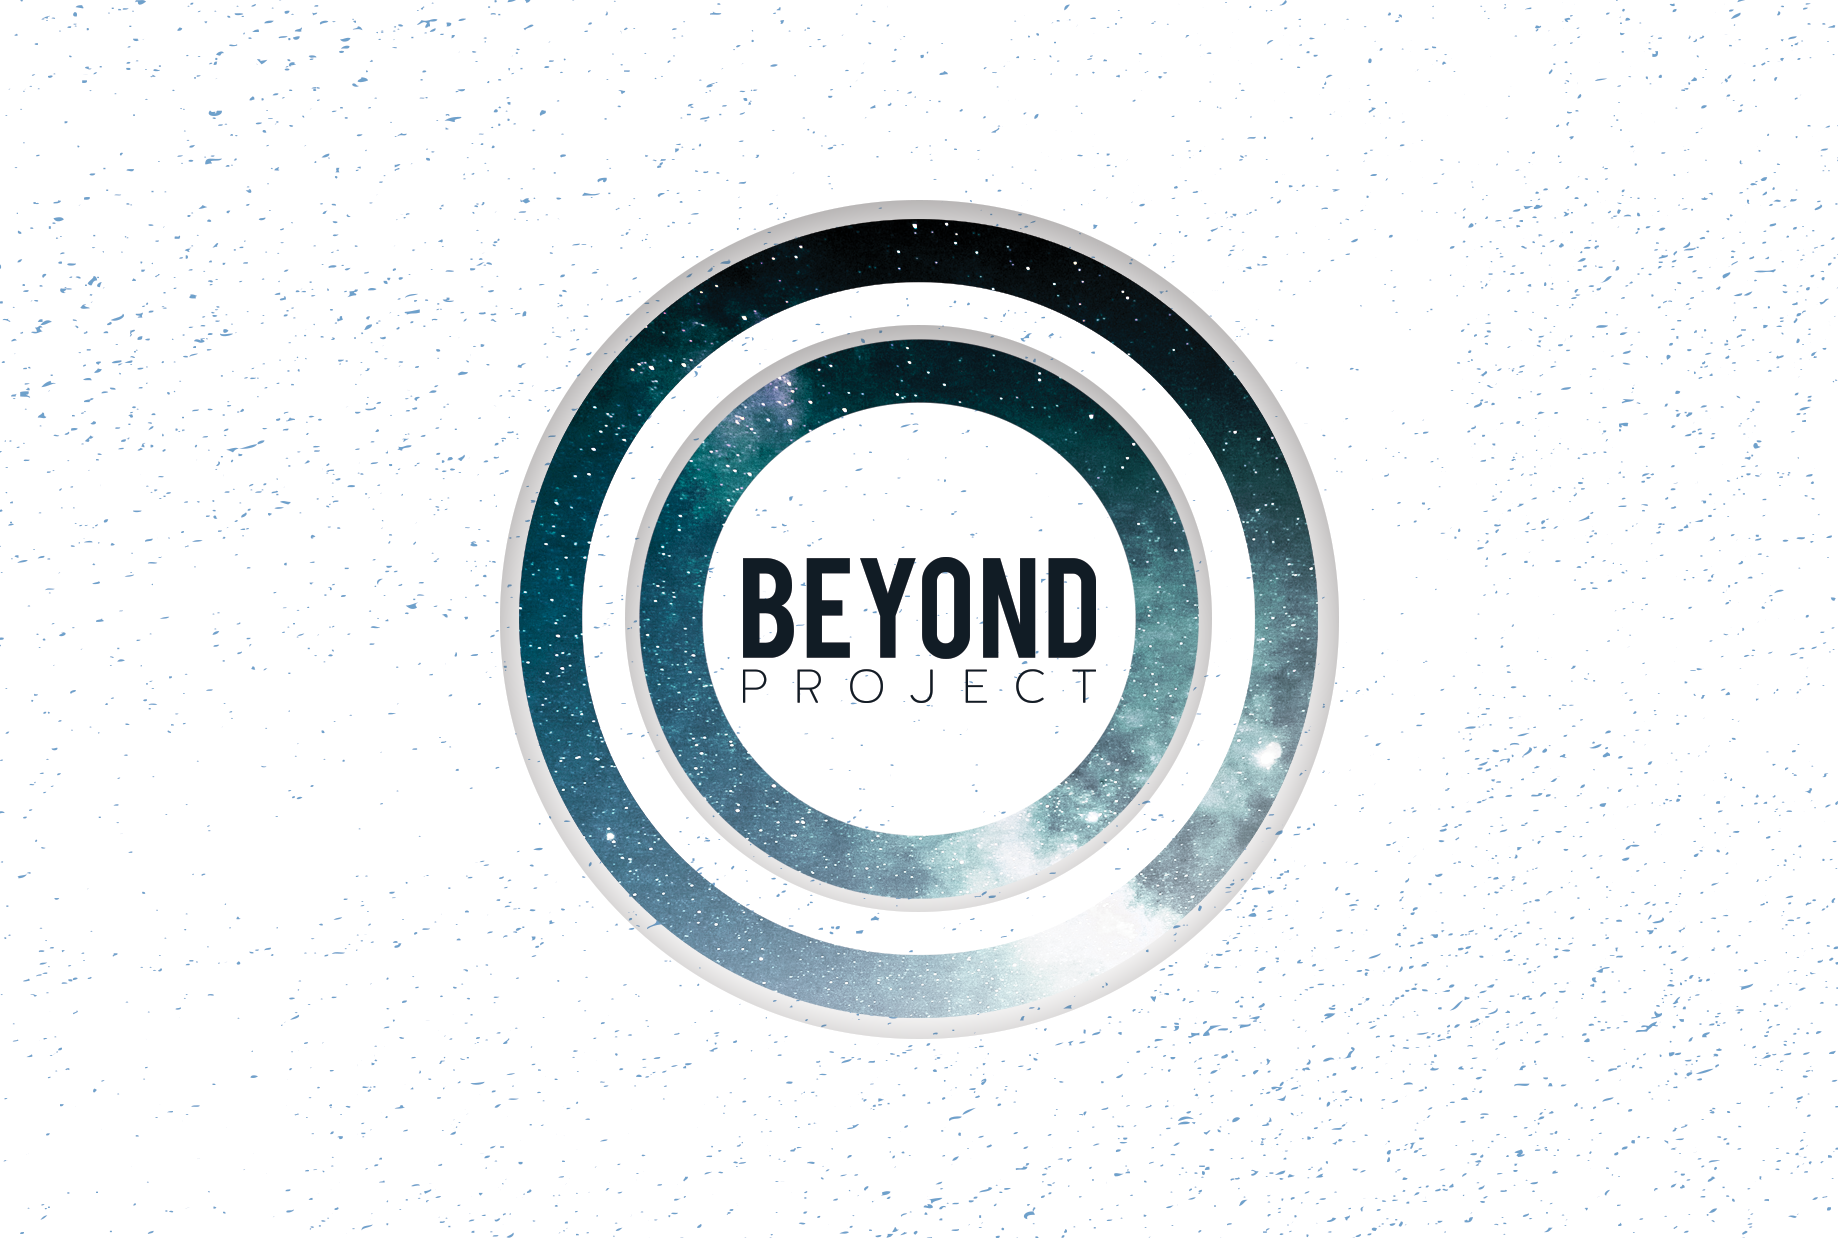 PC_Beyond_4x6_Front V3 (CMYK).png